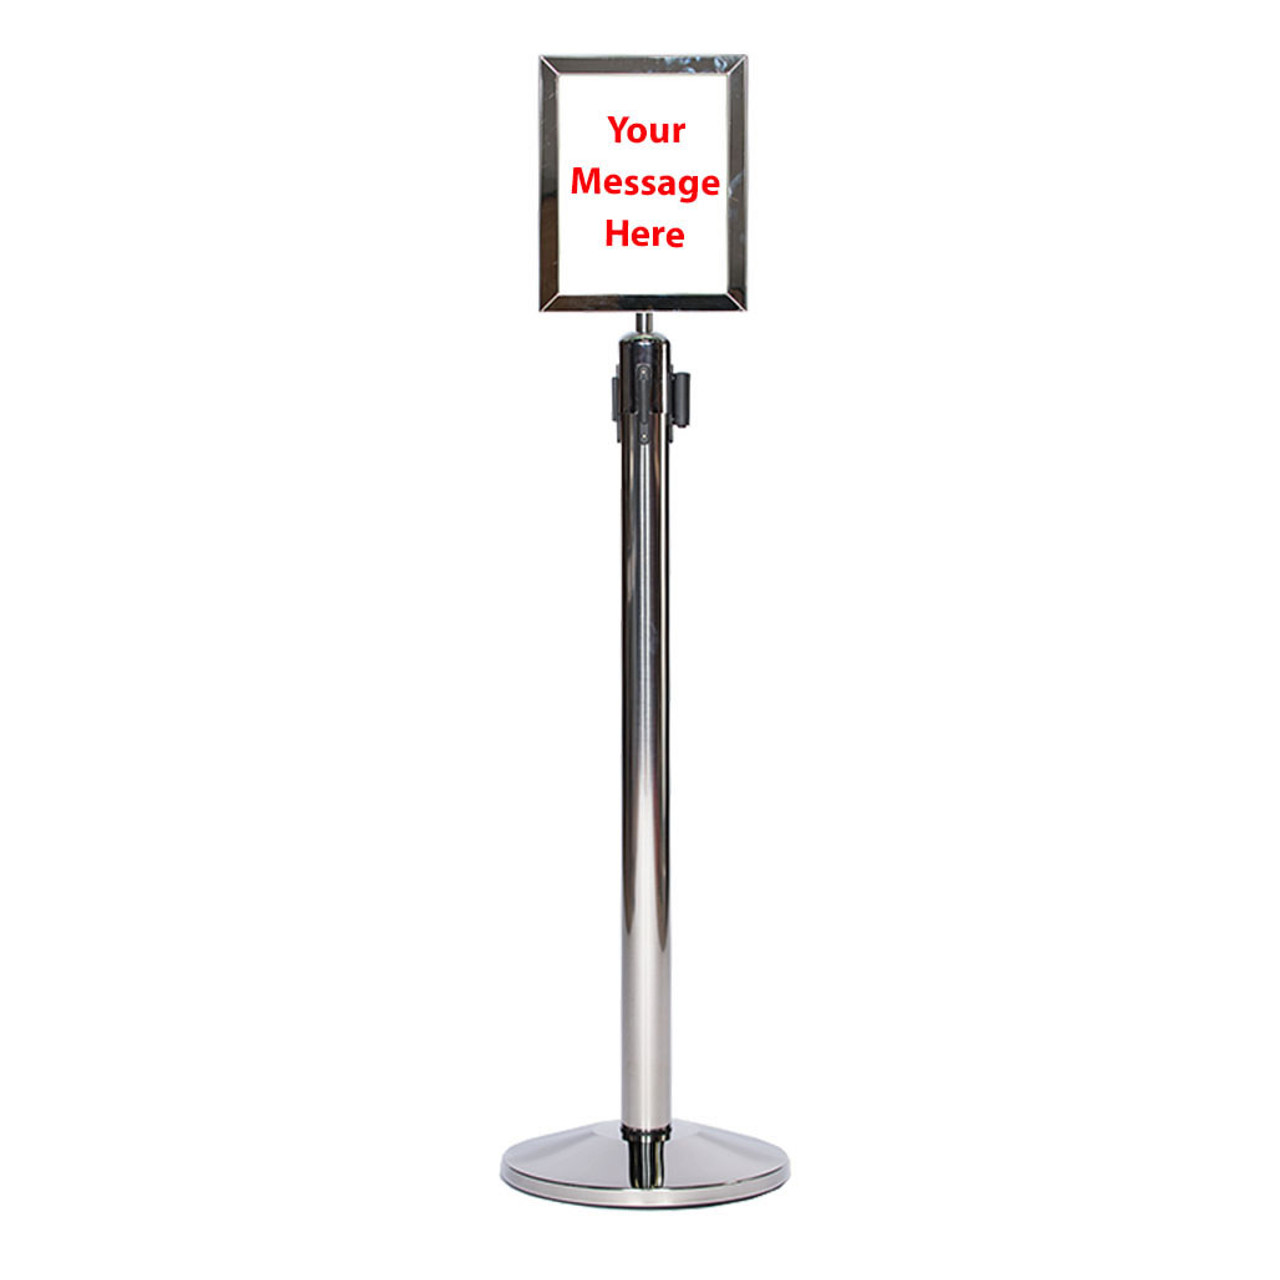 Top Rated Chrome or Stainless Sign Frame or Holder for a Retractable Belt Stanchion on a Chrome Stanchion